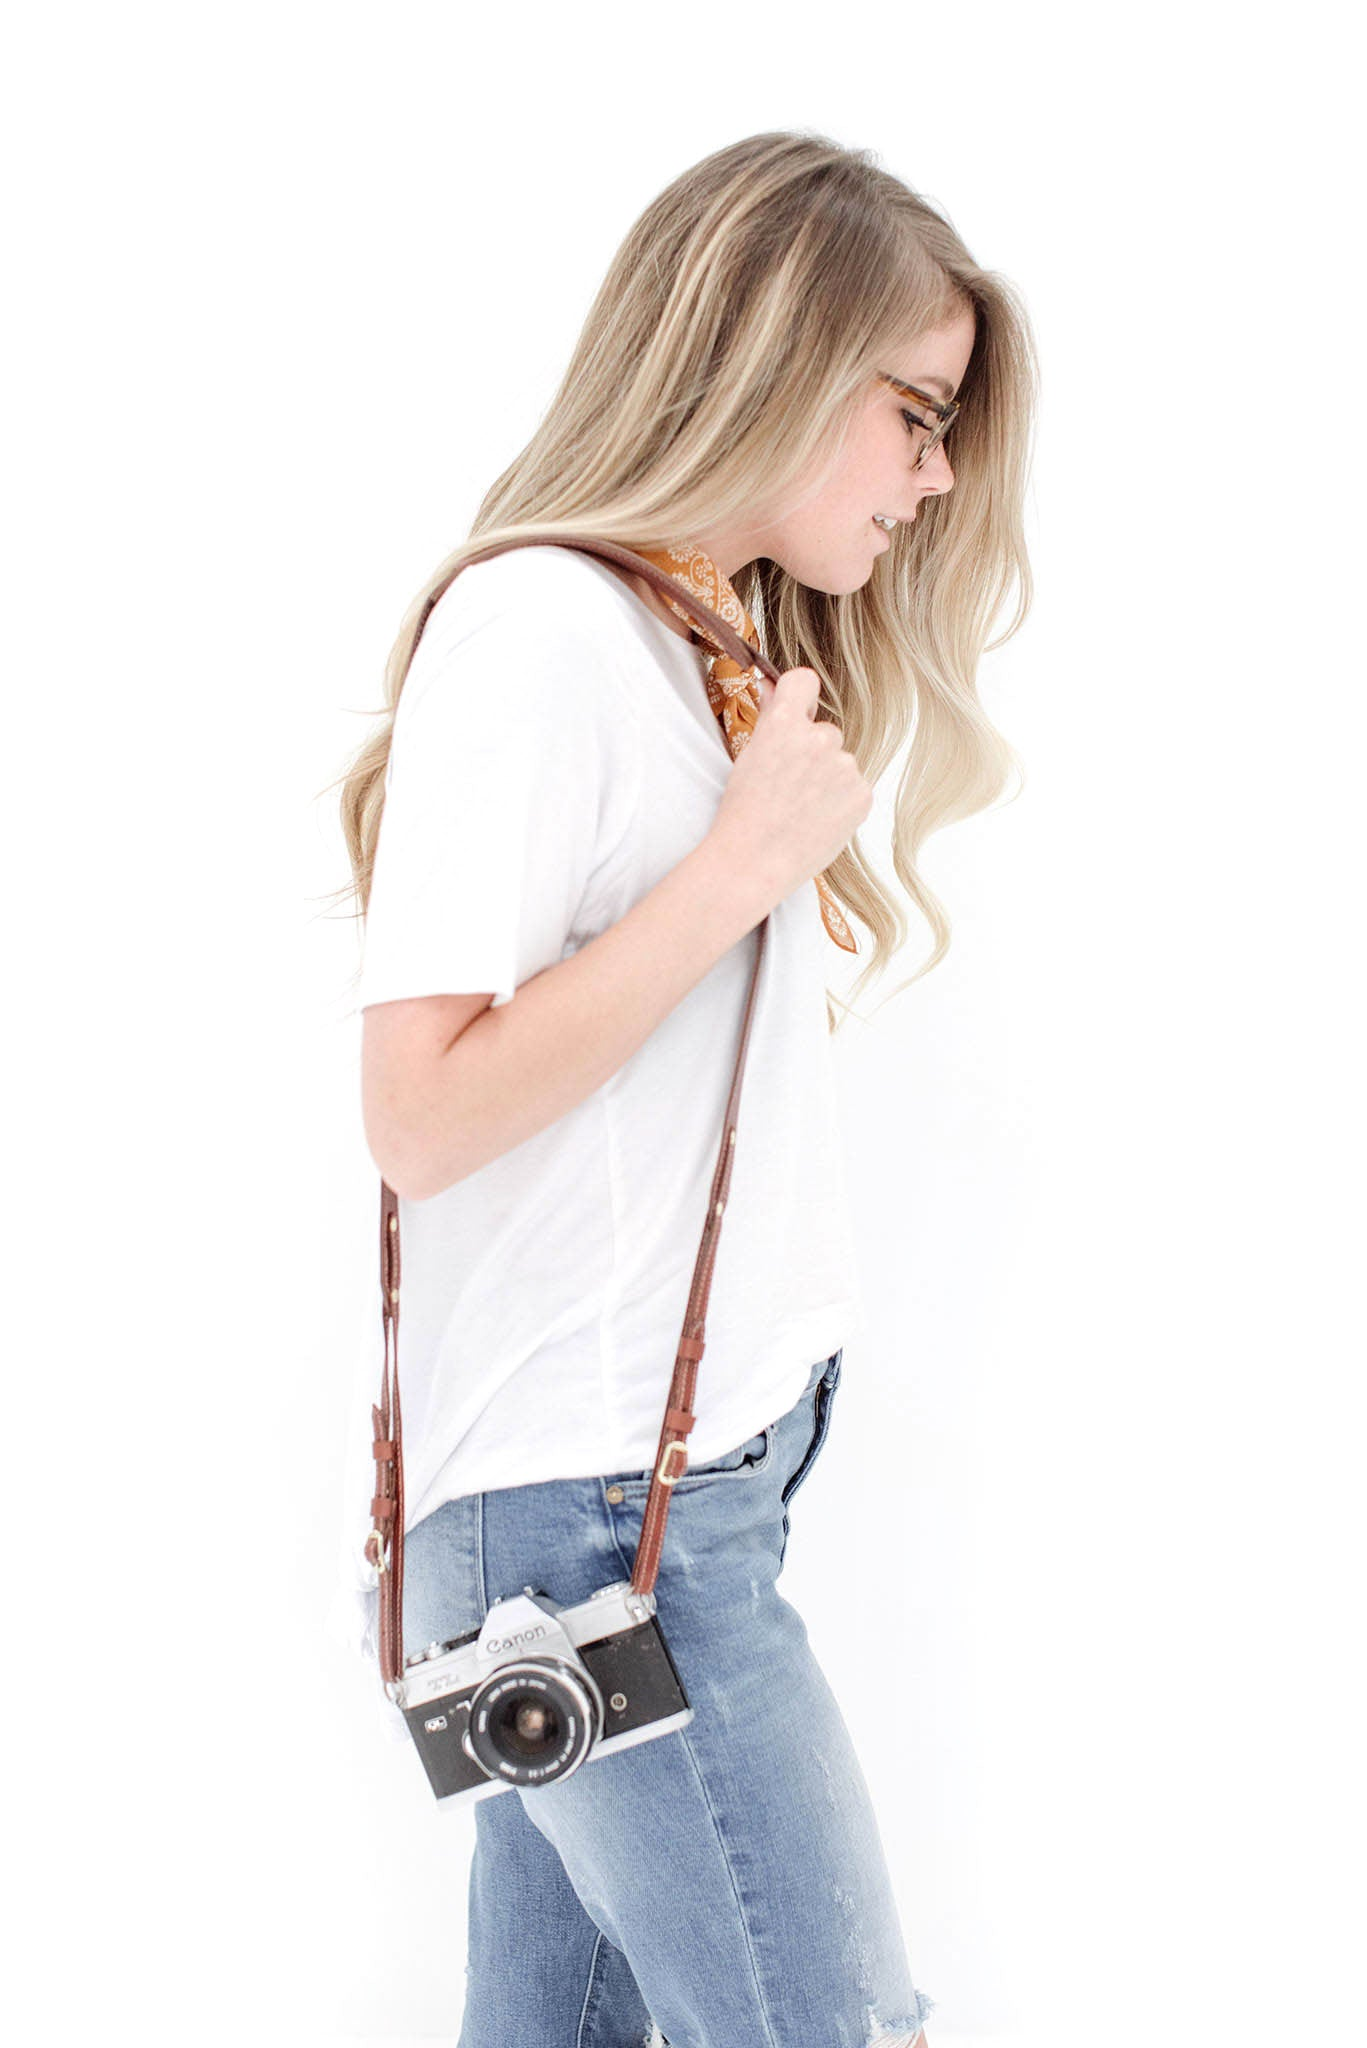 FOTO | The Skinny Dutch - a medium brown genuine all-leather skinny camera strap that can be personalized with a monogram or business logo, making this leather camera strap the perfect personalized gift.